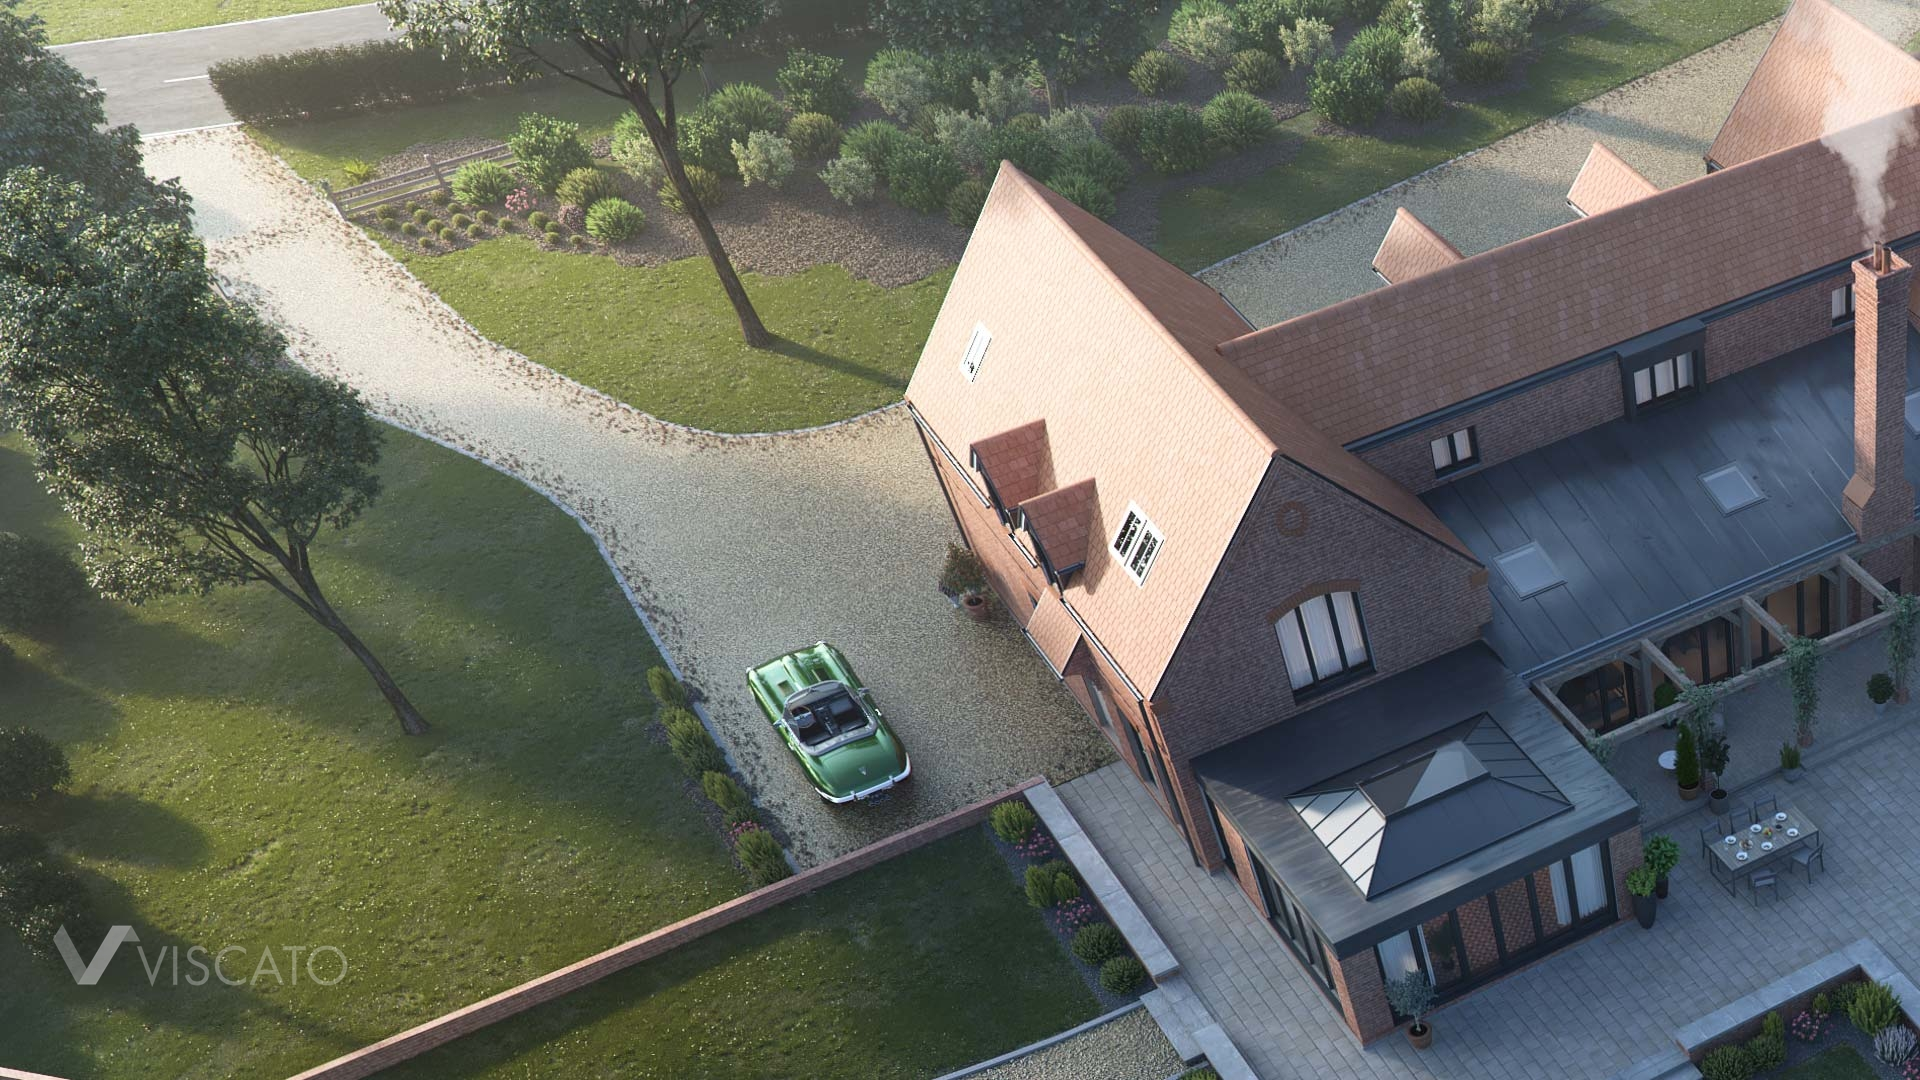 Brick House in England, Viscato 3D visualization